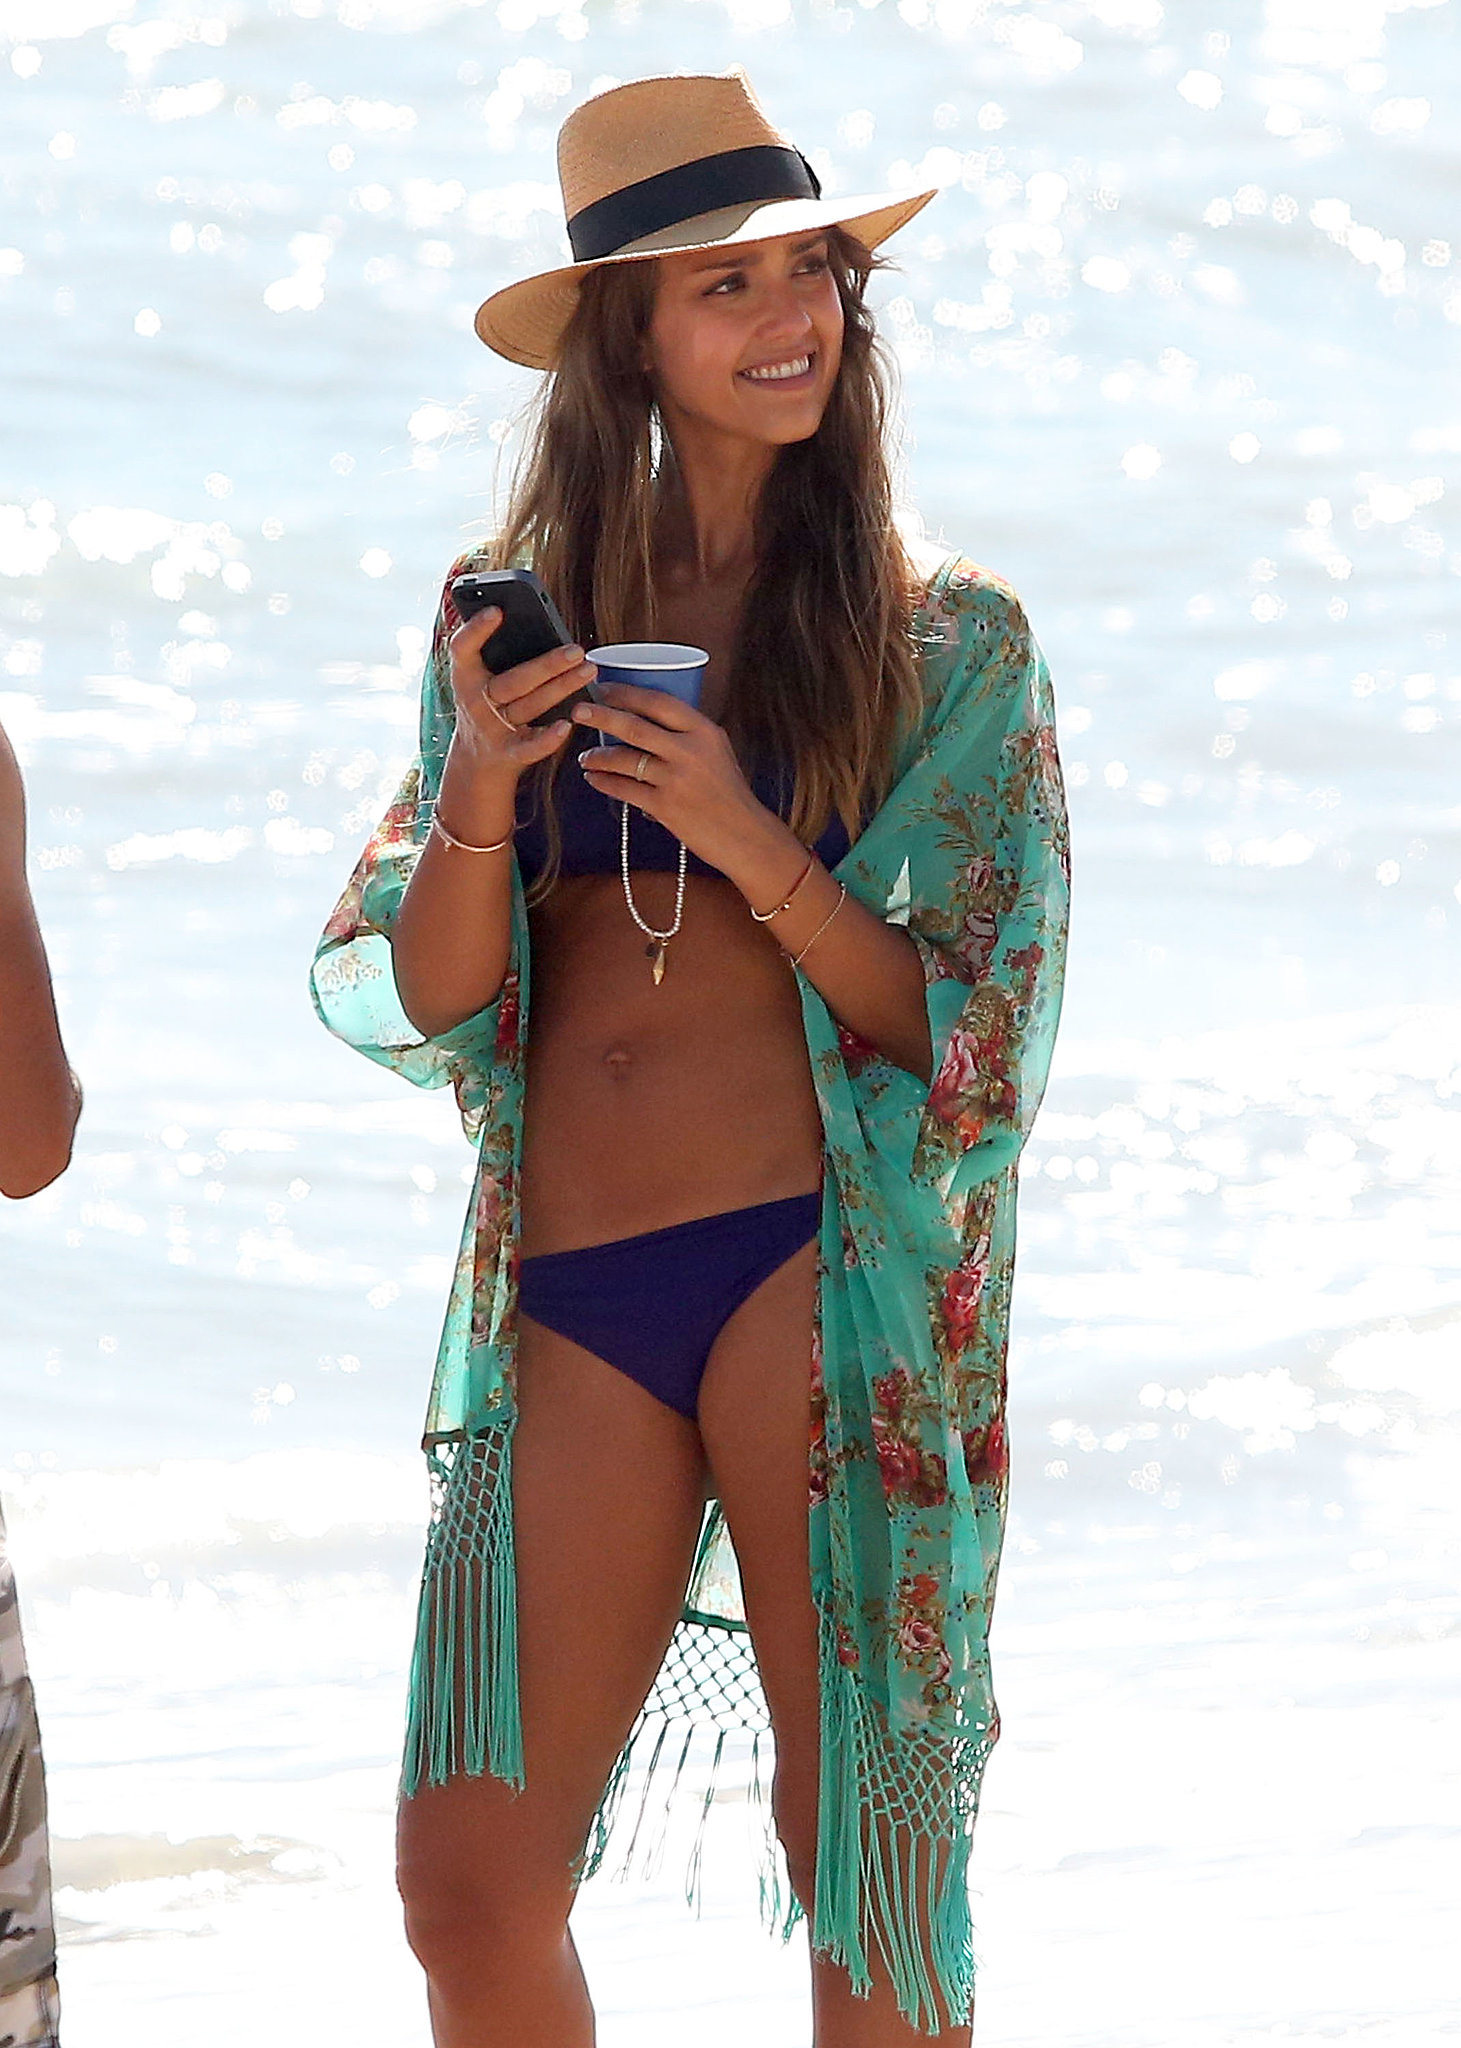 Jessica Alba smiled while hanging out in her bikini.